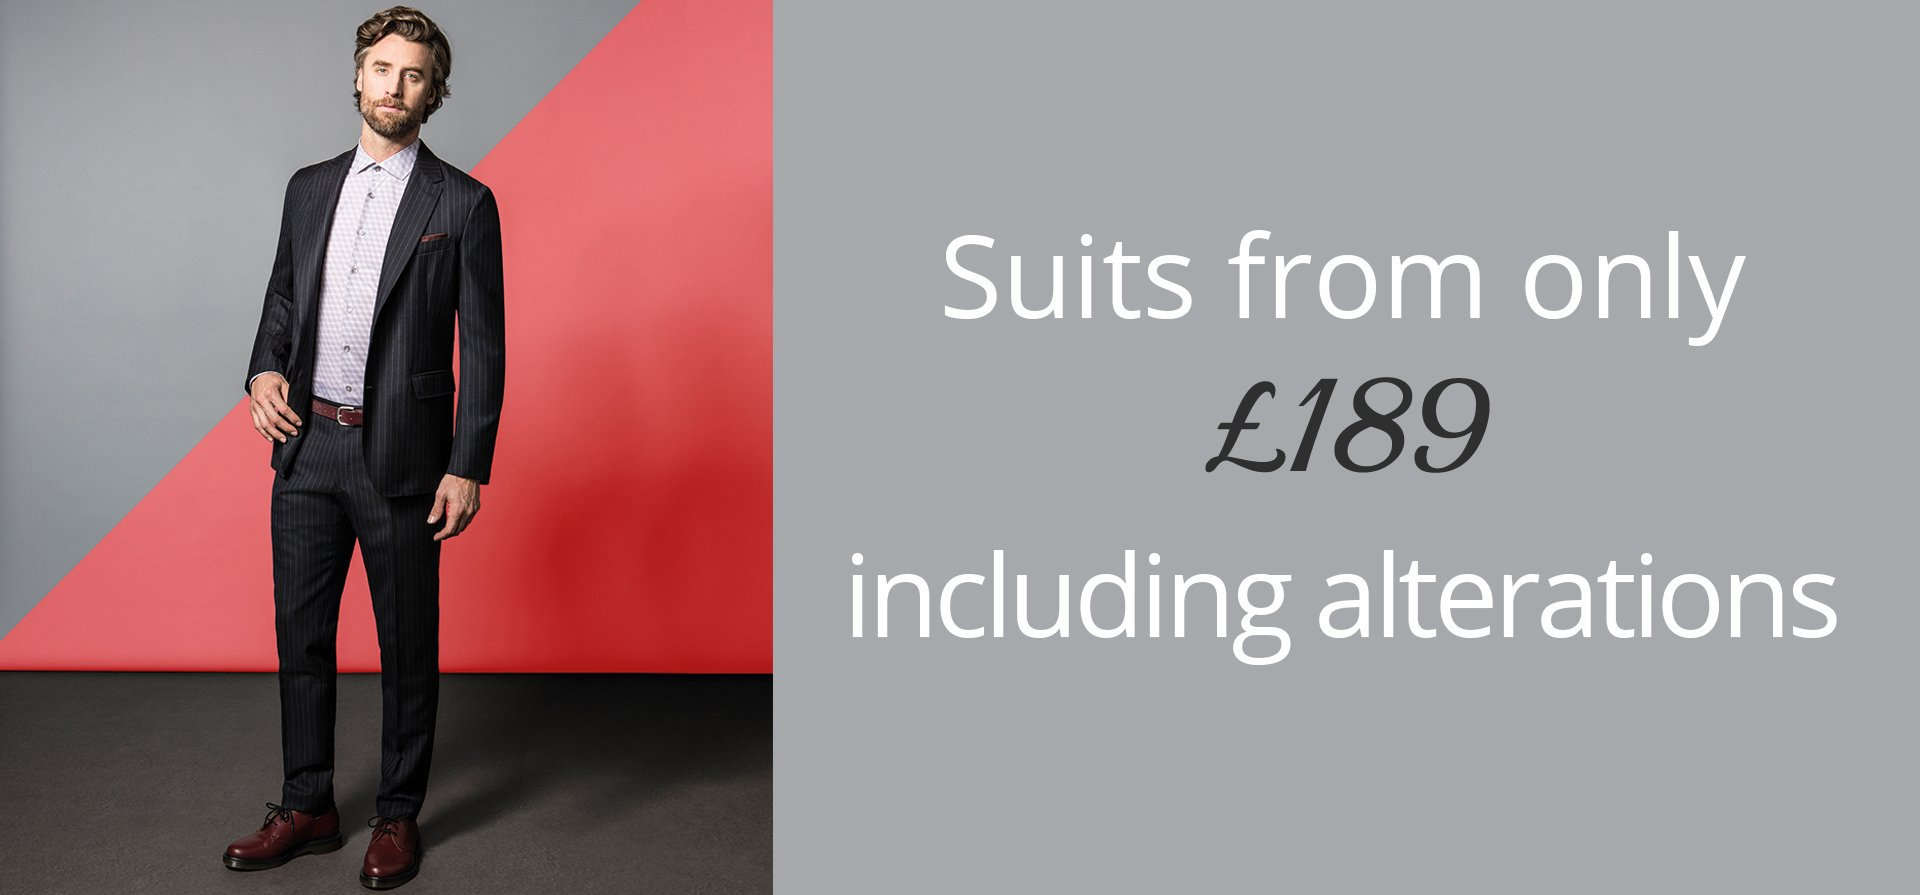 Mens suits off the peg from £189 call us today or ask in store for more details 01926 400647